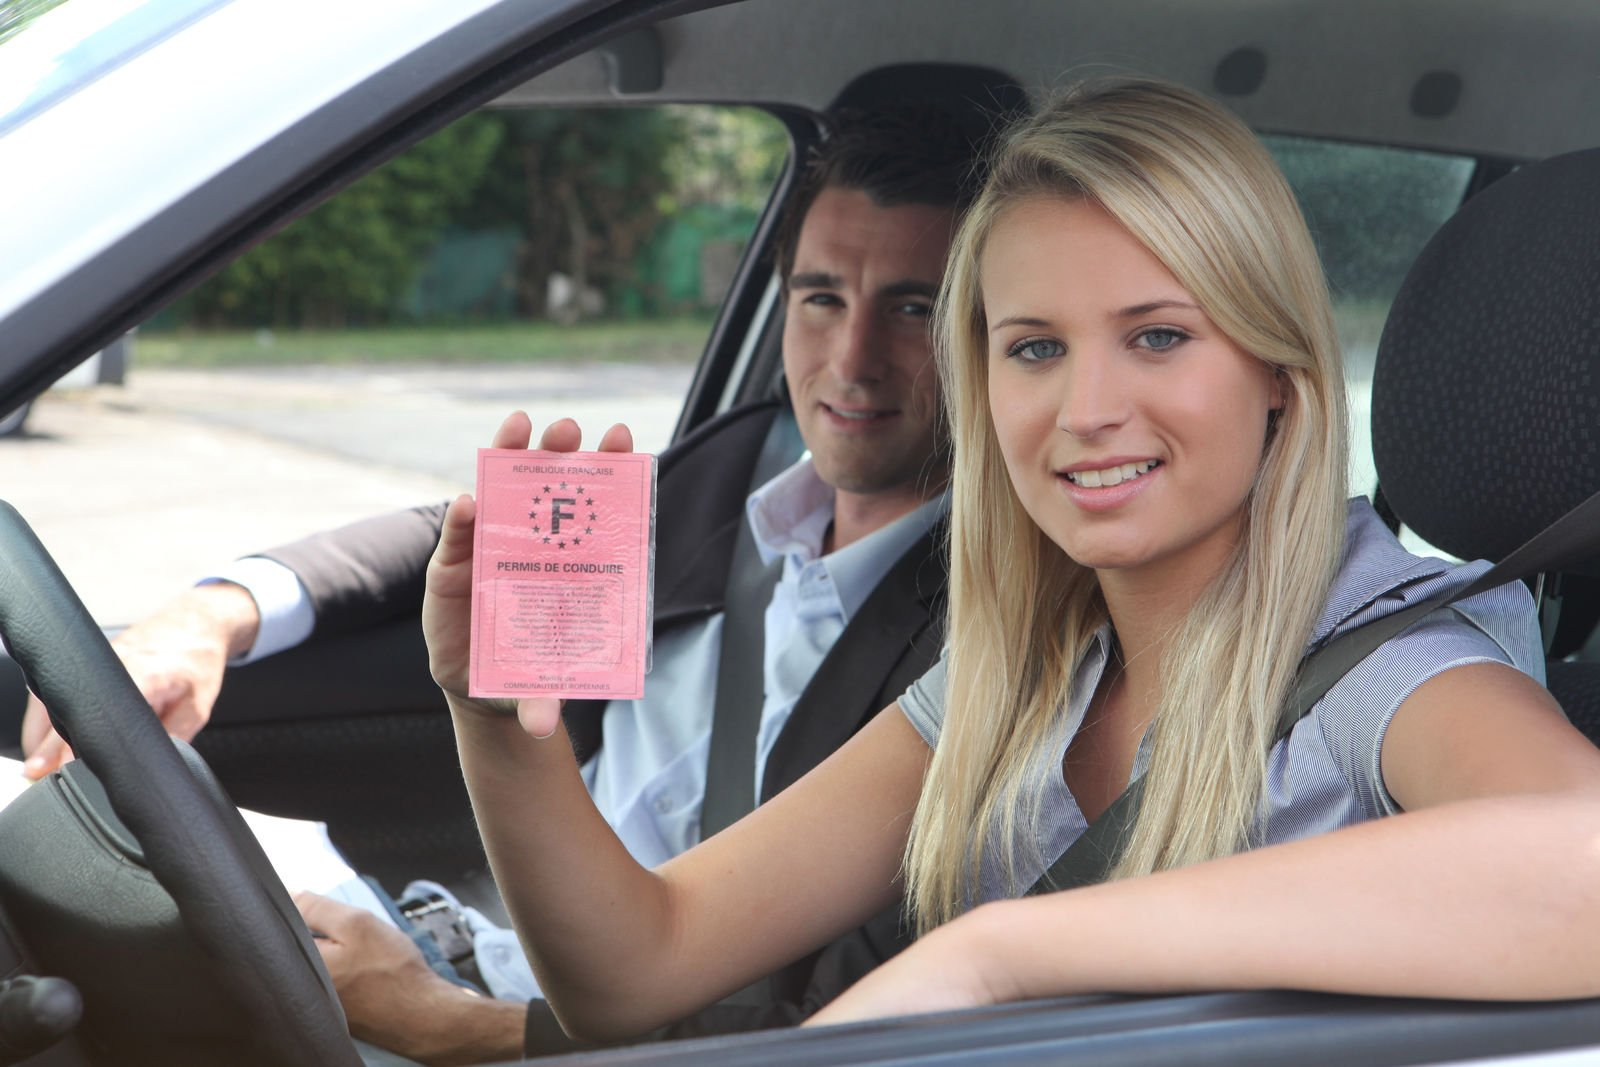 Photo driving licence compulsory Events and things to do in Sacramento m